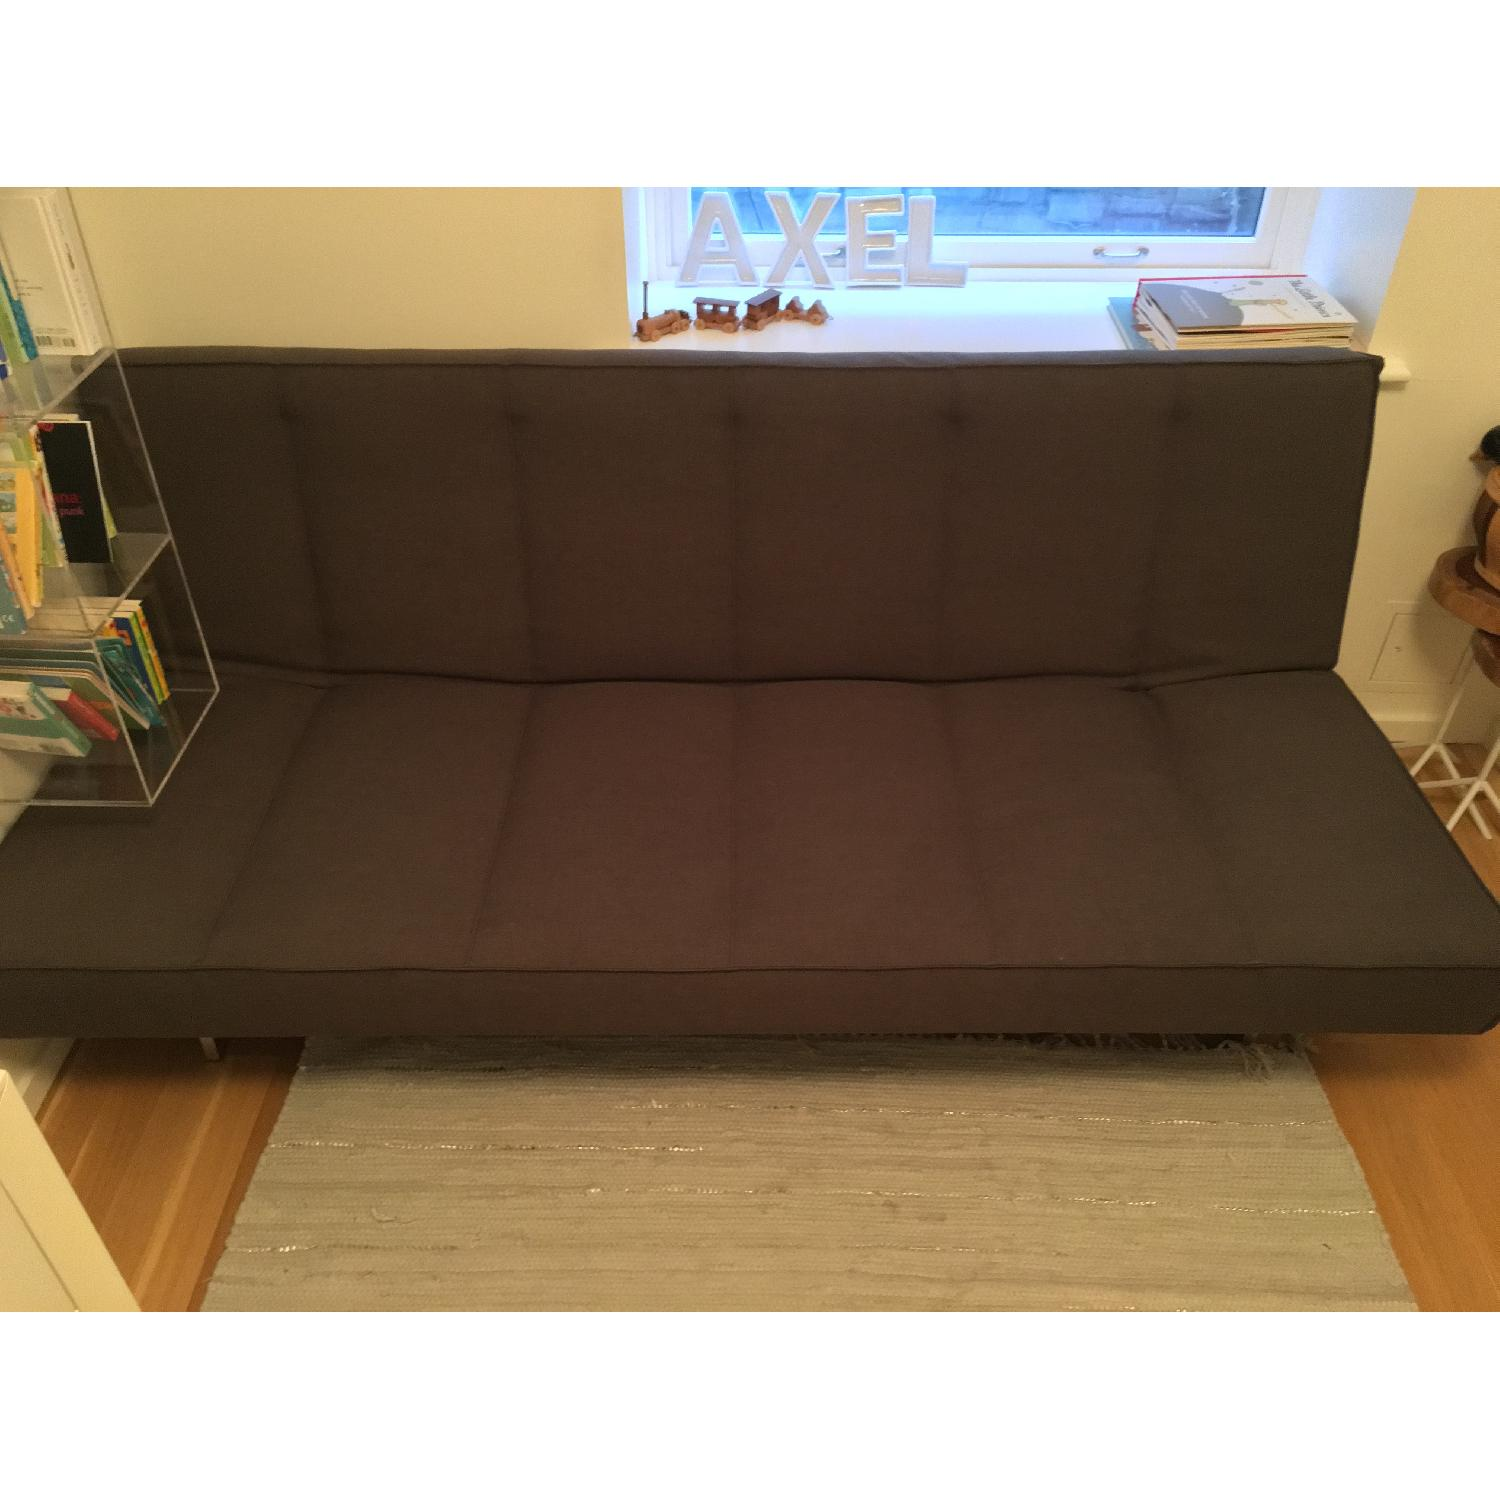 CB2 Flex Gravel Sleeper Sofa - image-17